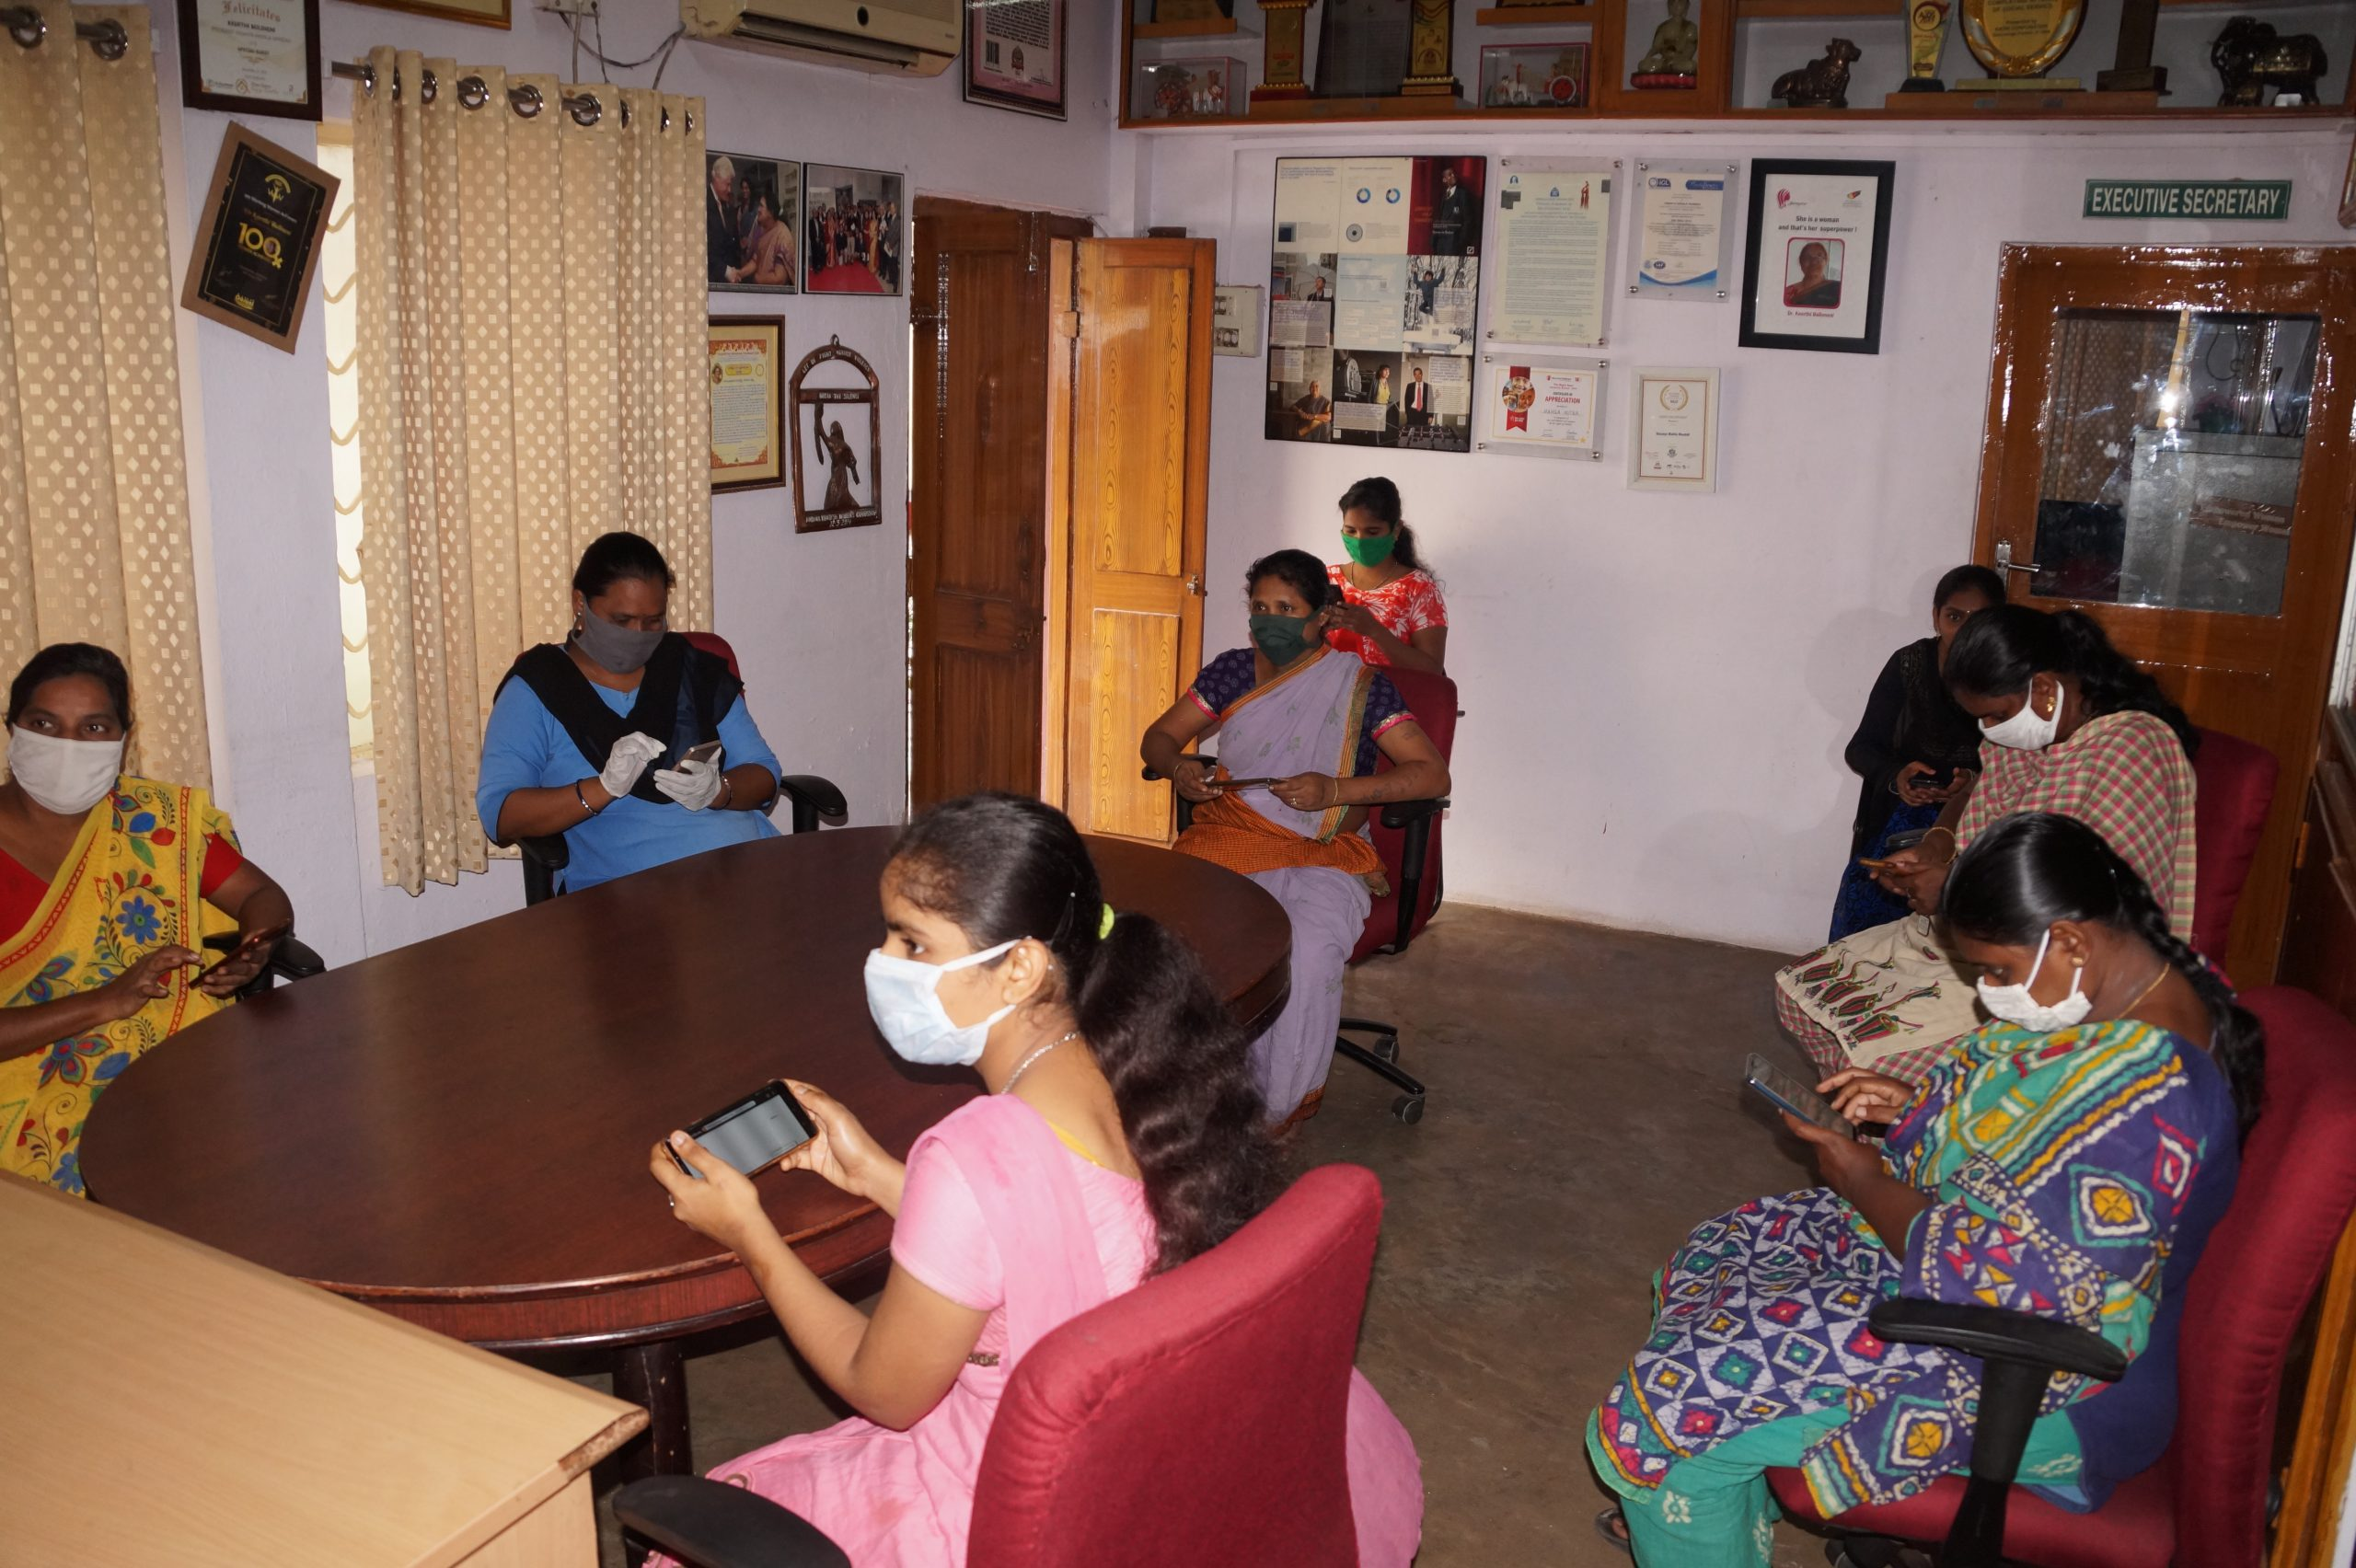 COVID-19 symptoms and prevention training for community health workers